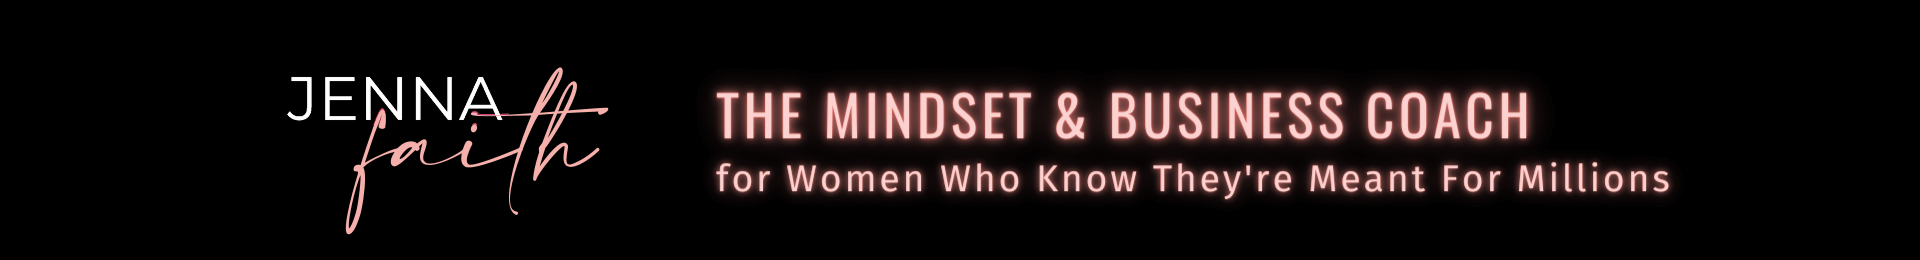 Jenna Faith the Mindset and Business Coach for Women Who Know They're Meant For Millions